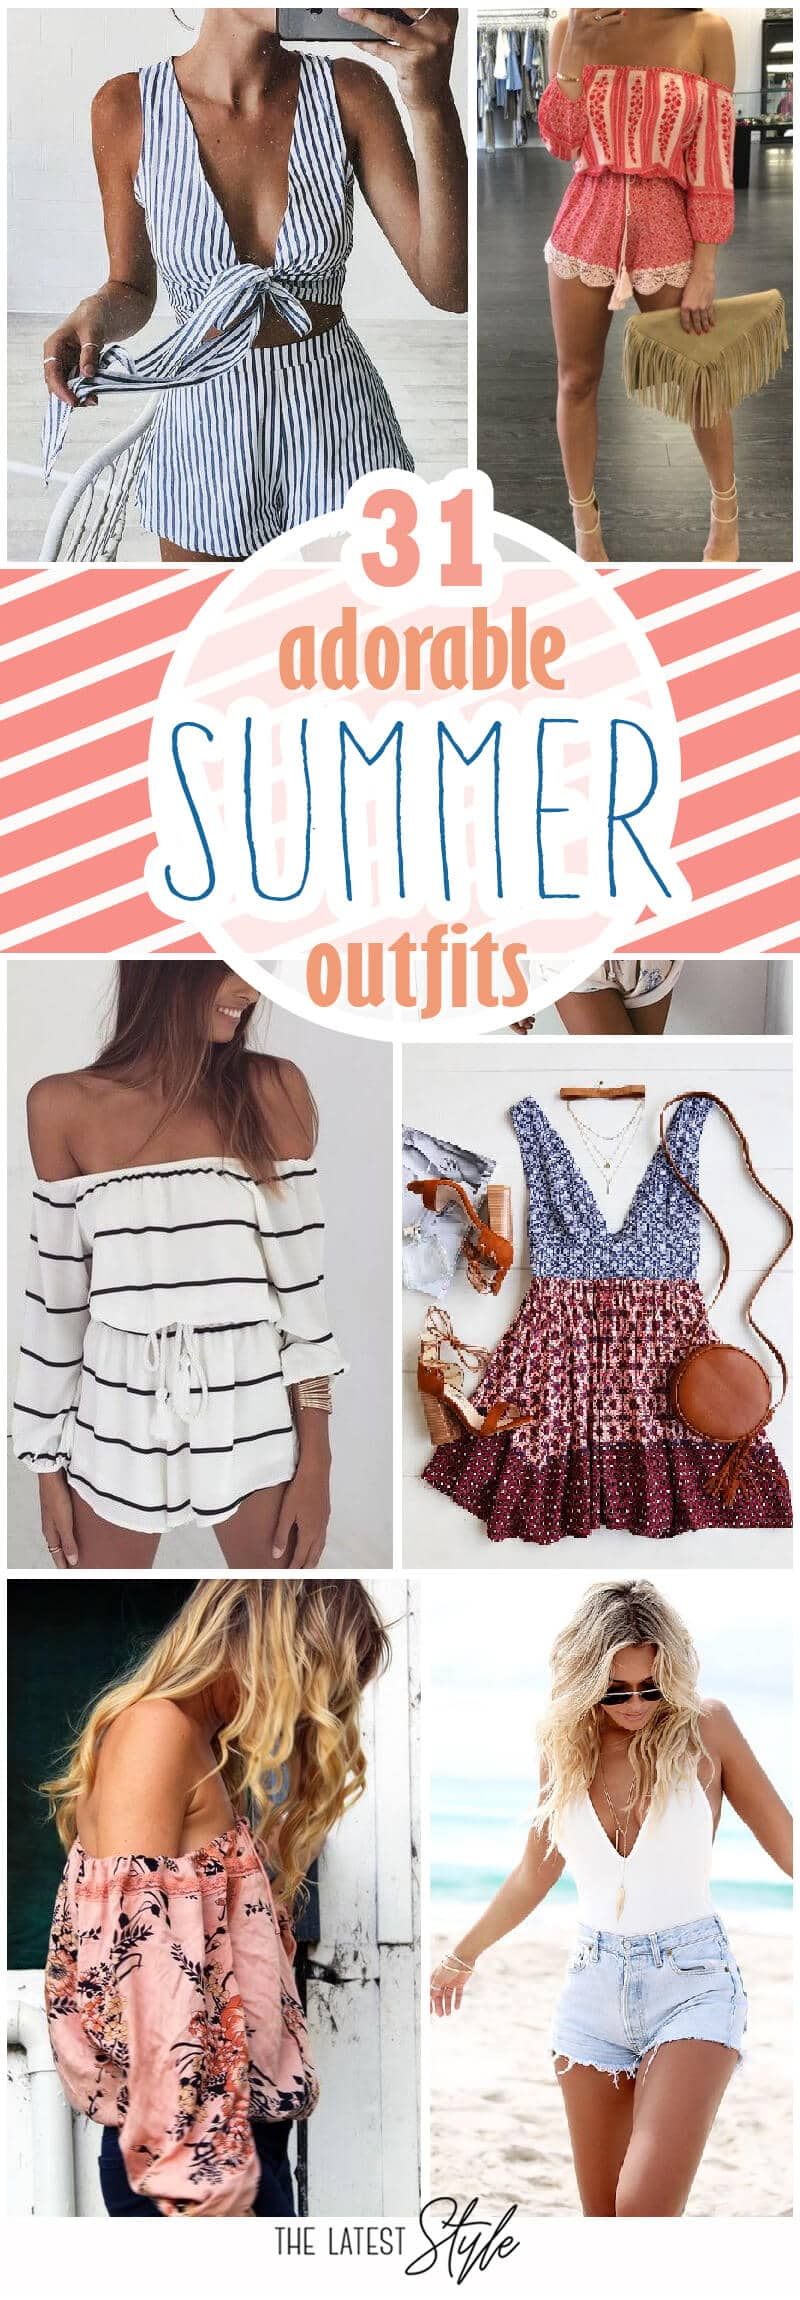 31 Adorable Summer Outfit Inspirations